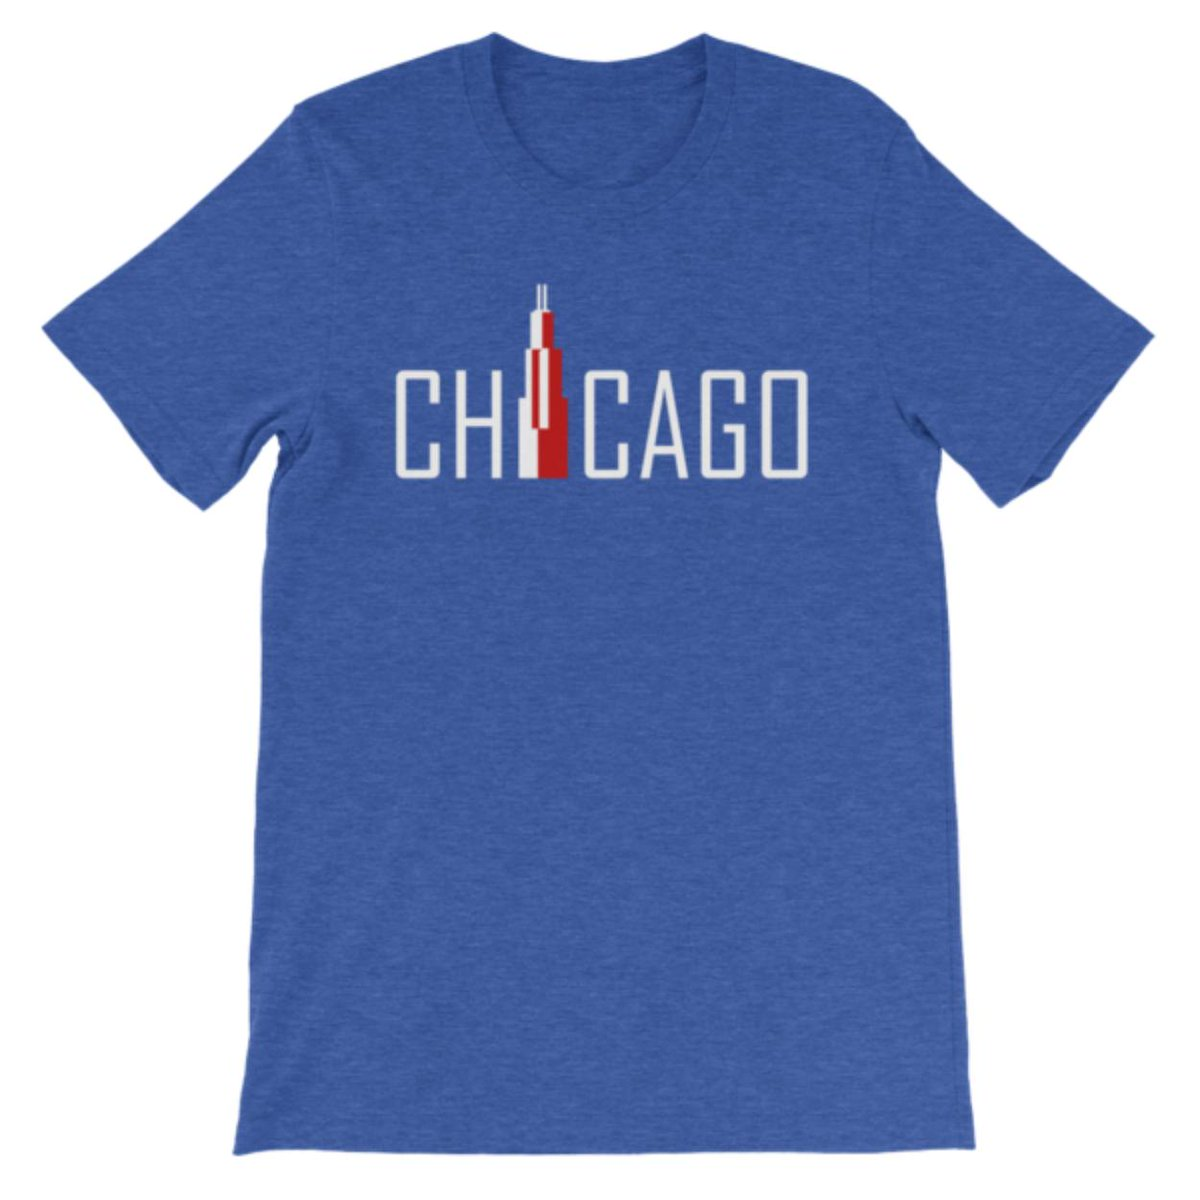 Happy Birthday to the best city in the world, #Chicago! . https://t.co/XnTif7oJ0z . . #allographictees #chicagoday #HappyBirthdayChicago #chitown #secondcity to none #windycity #chicagolife #chicagoliving #chicagolove #chicagolover #chicagolovers #chicagolifestyle #chicagostyle https://t.co/RmZ1mZhmyN